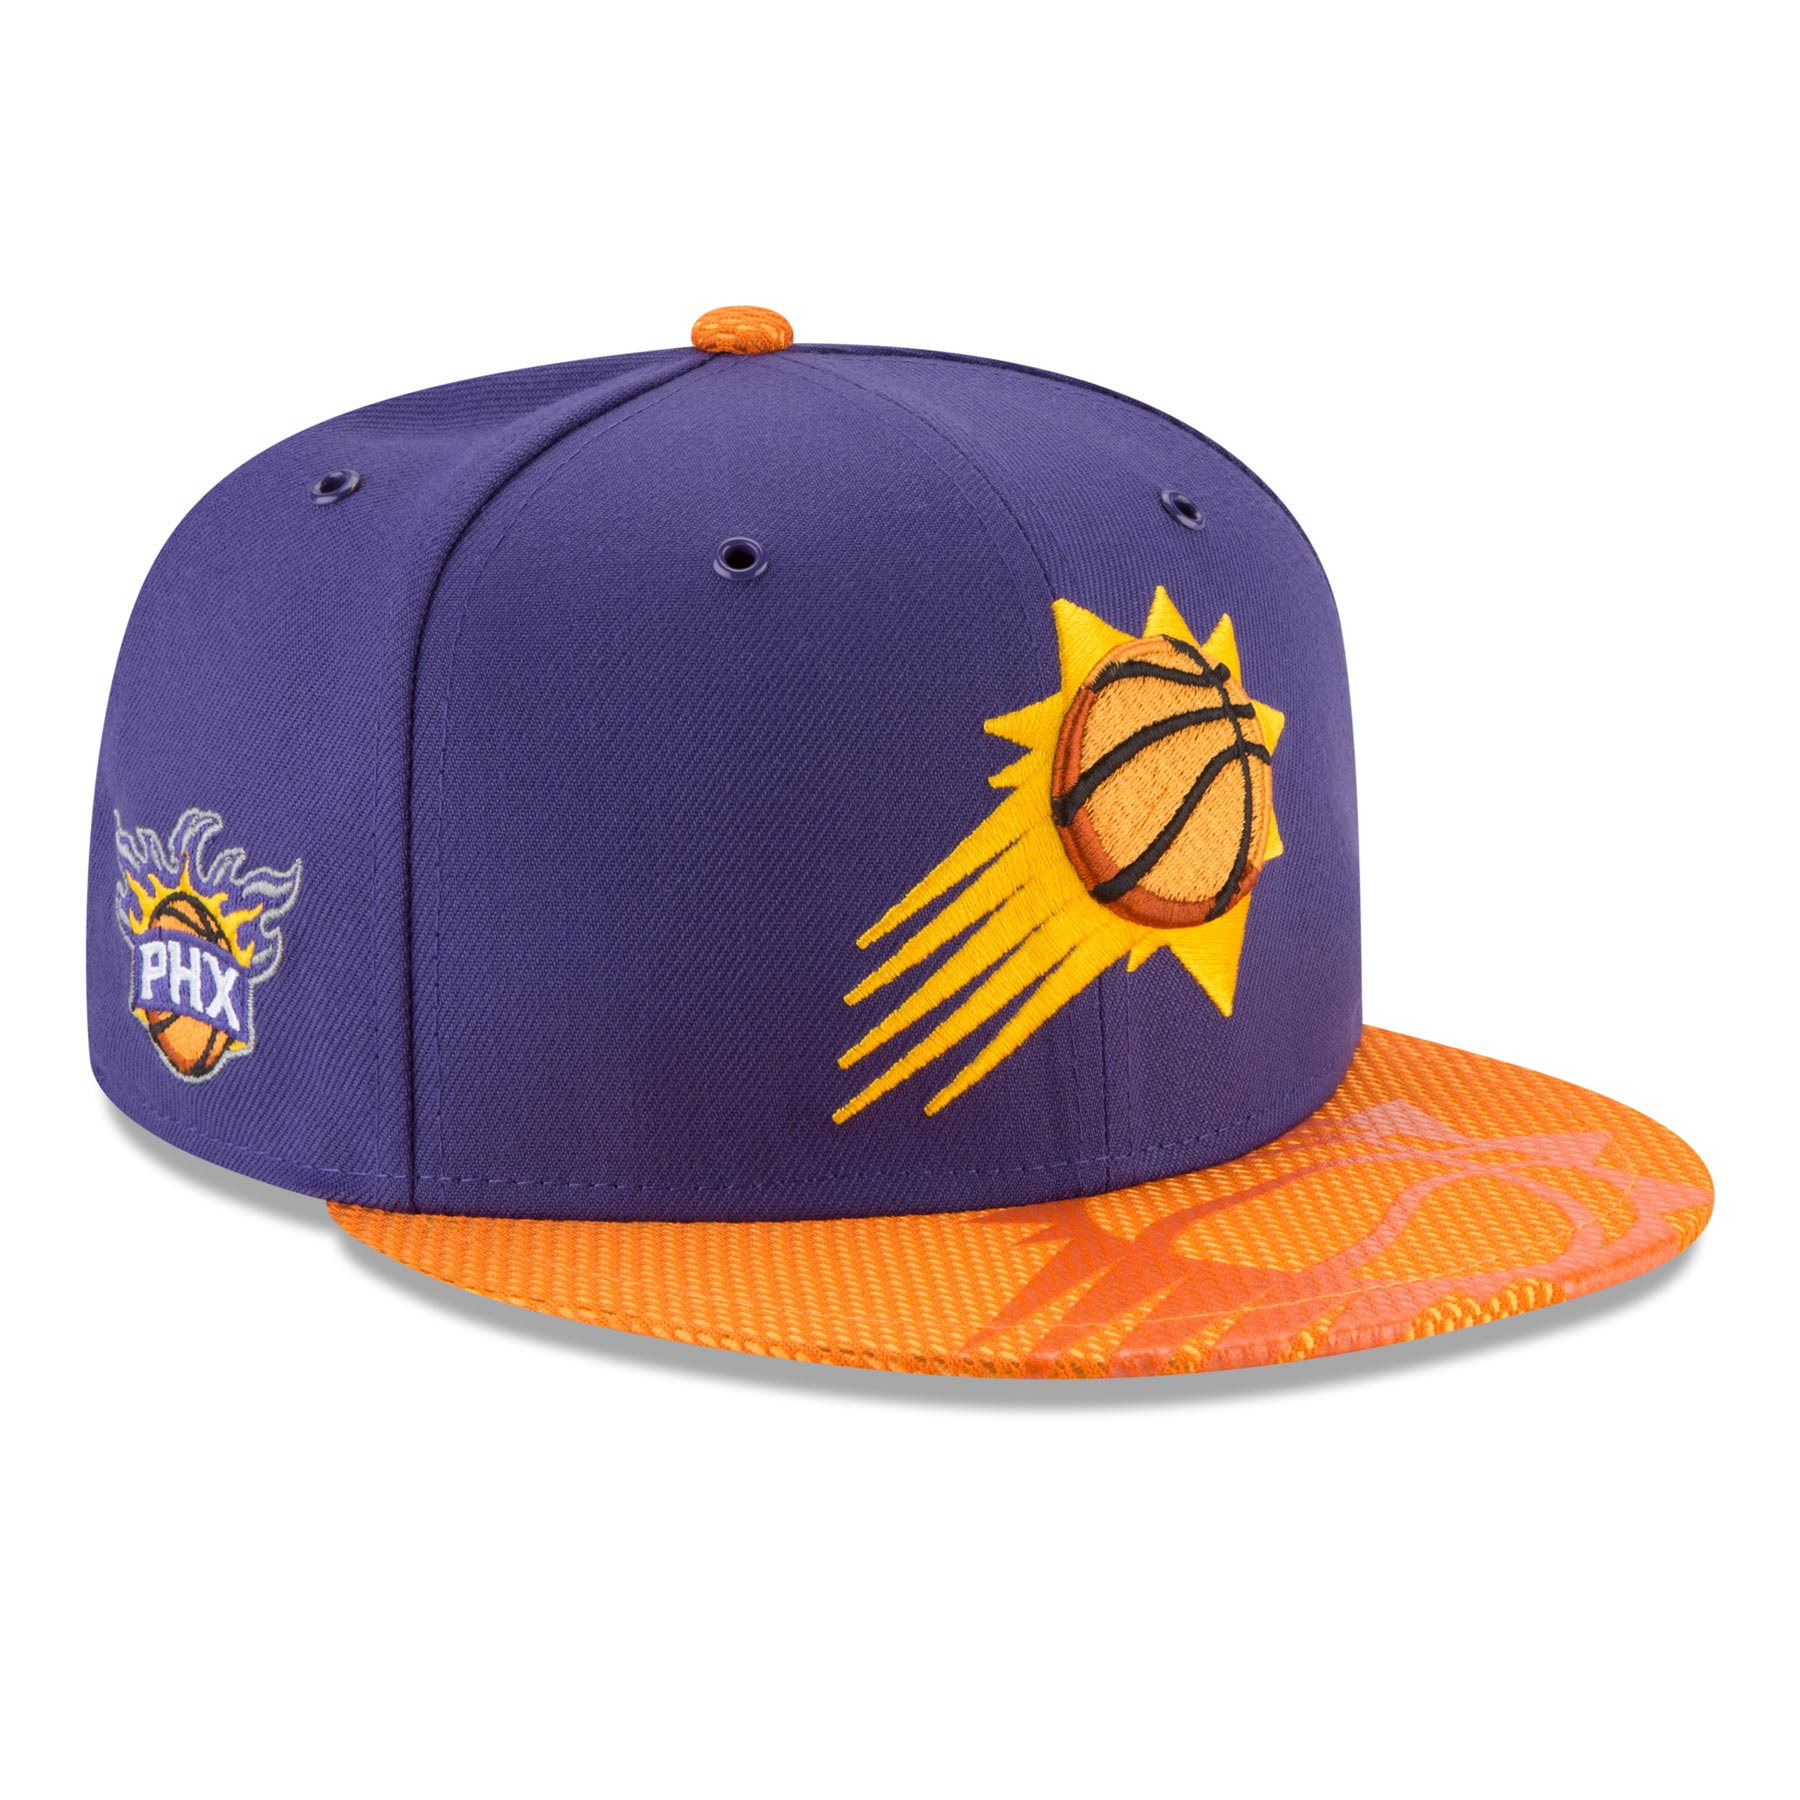 phpuO7WXt Phoenix Suns New Era NBA 2018 On Court All-Star Collection 9FIFTY Snapback Cap / Adjustable - Polyester - IceJerseys Hats & Caps NBA Teamware / Logo